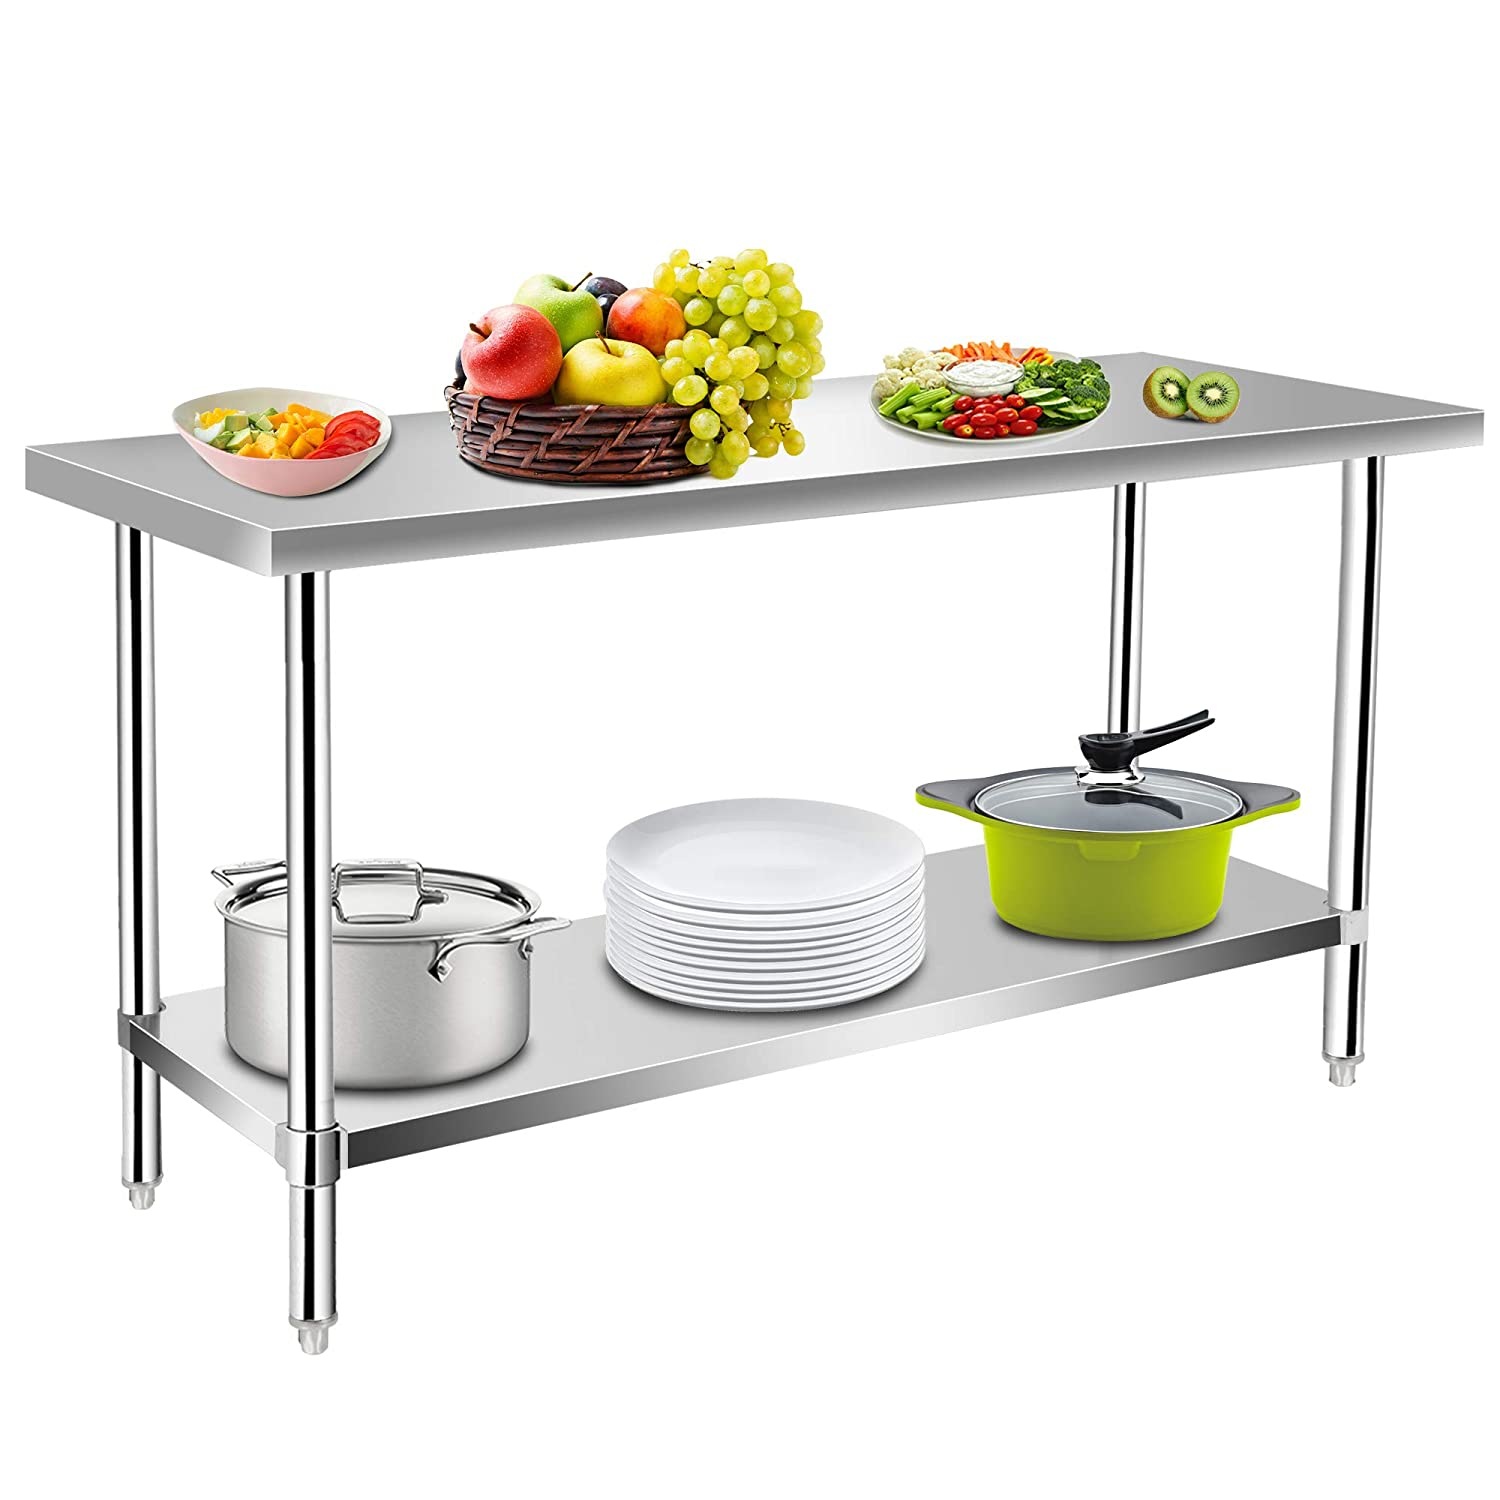 Commercial Kitchen Prep & Work Table, KITMA Stainless Steel Food Prep Table, 36 x 24 Inches,NSF